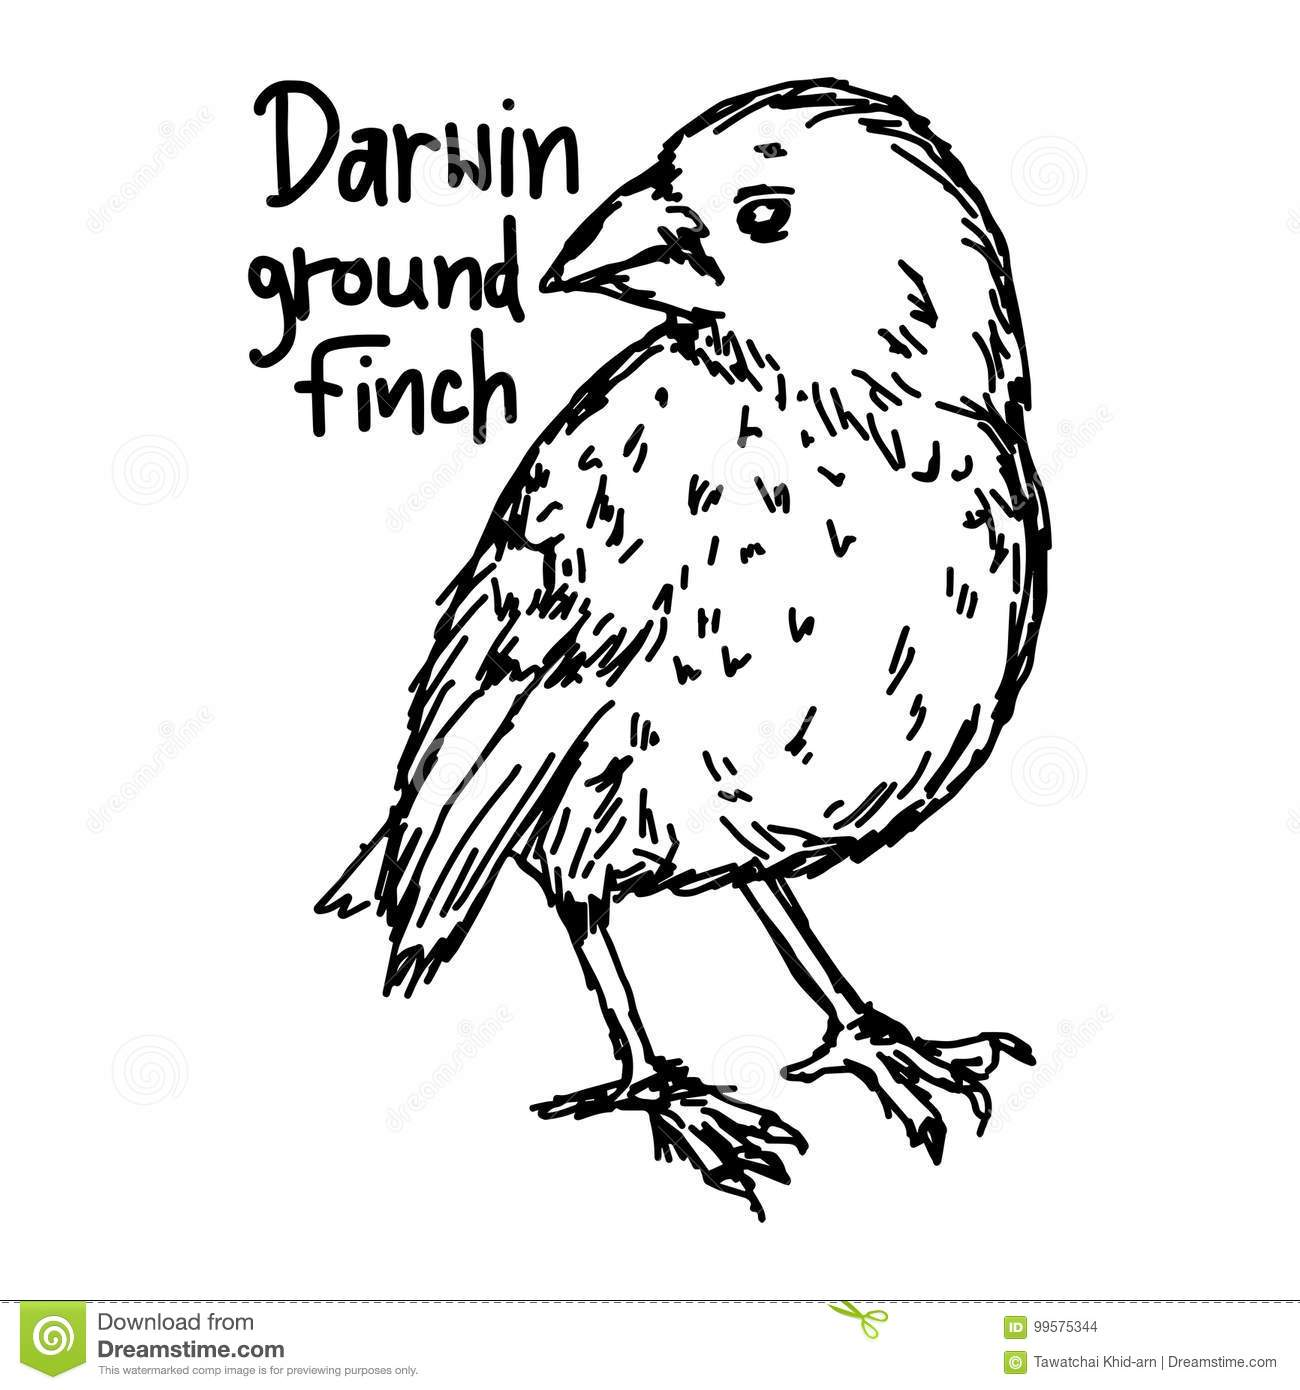 Darwin Ground Finch